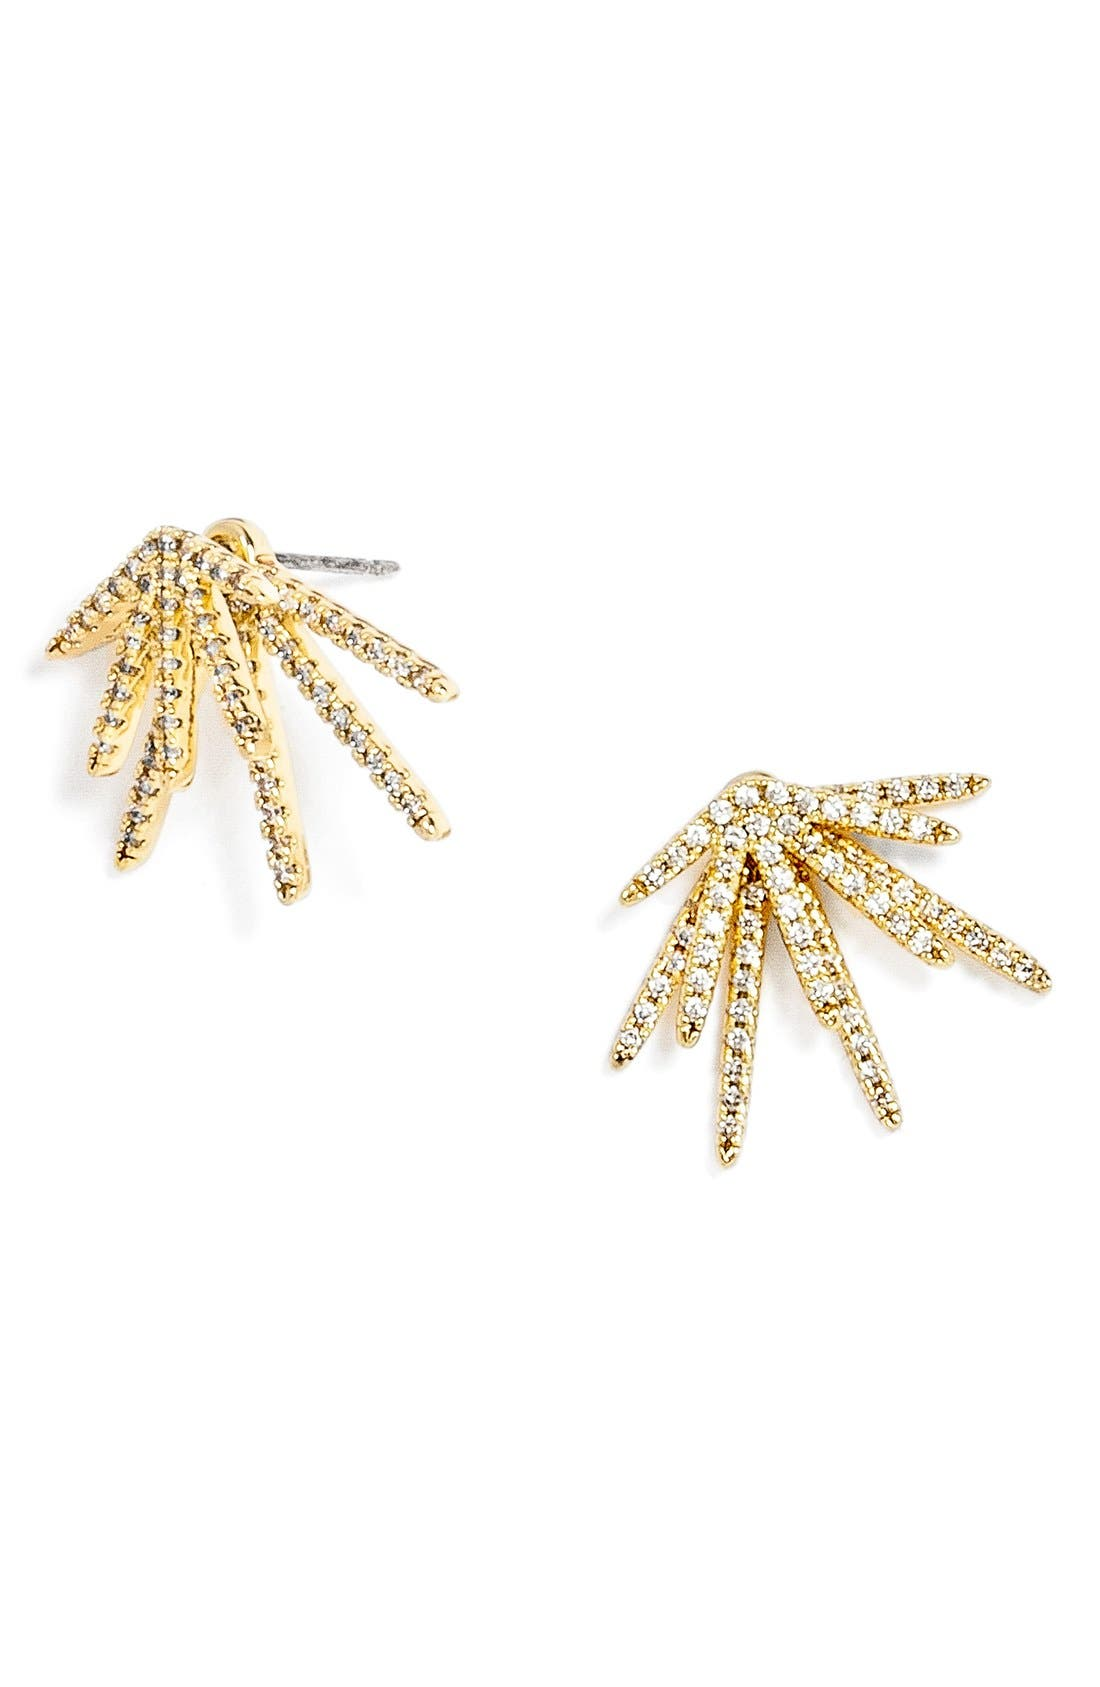 BAUBLEBAR 'Firecracker' Ear Jackets